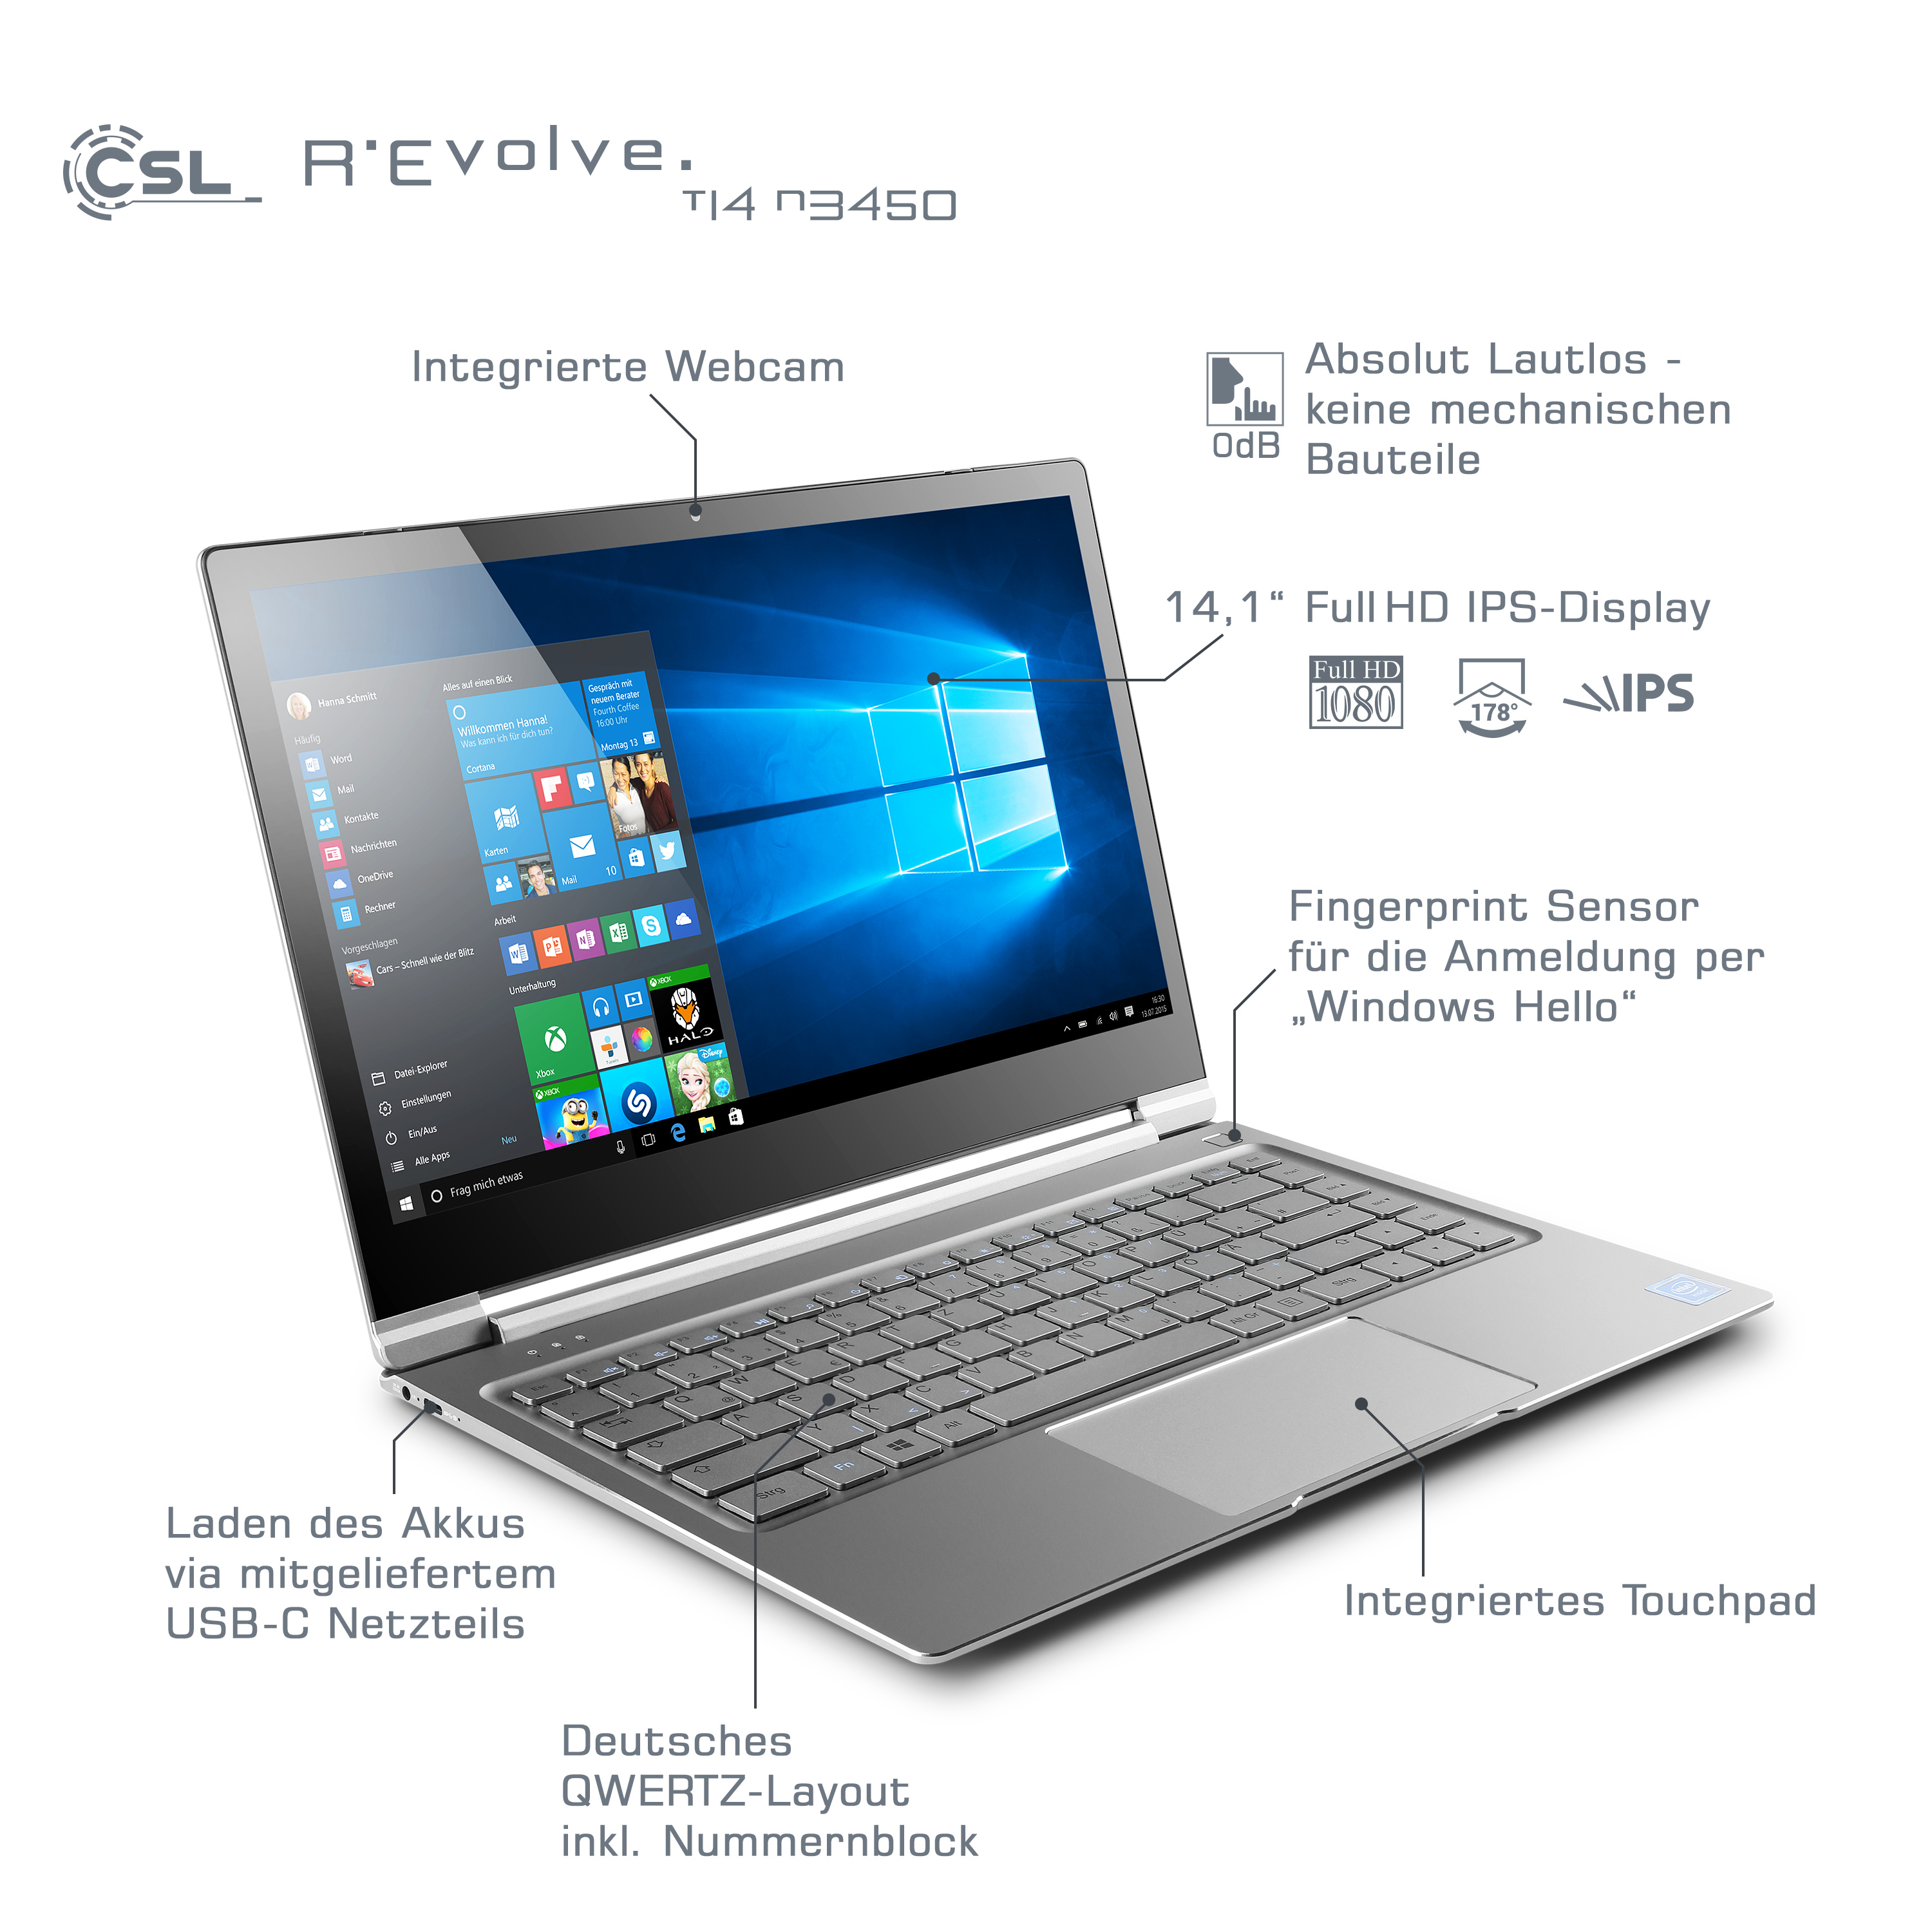 R'Evolve t14 Features